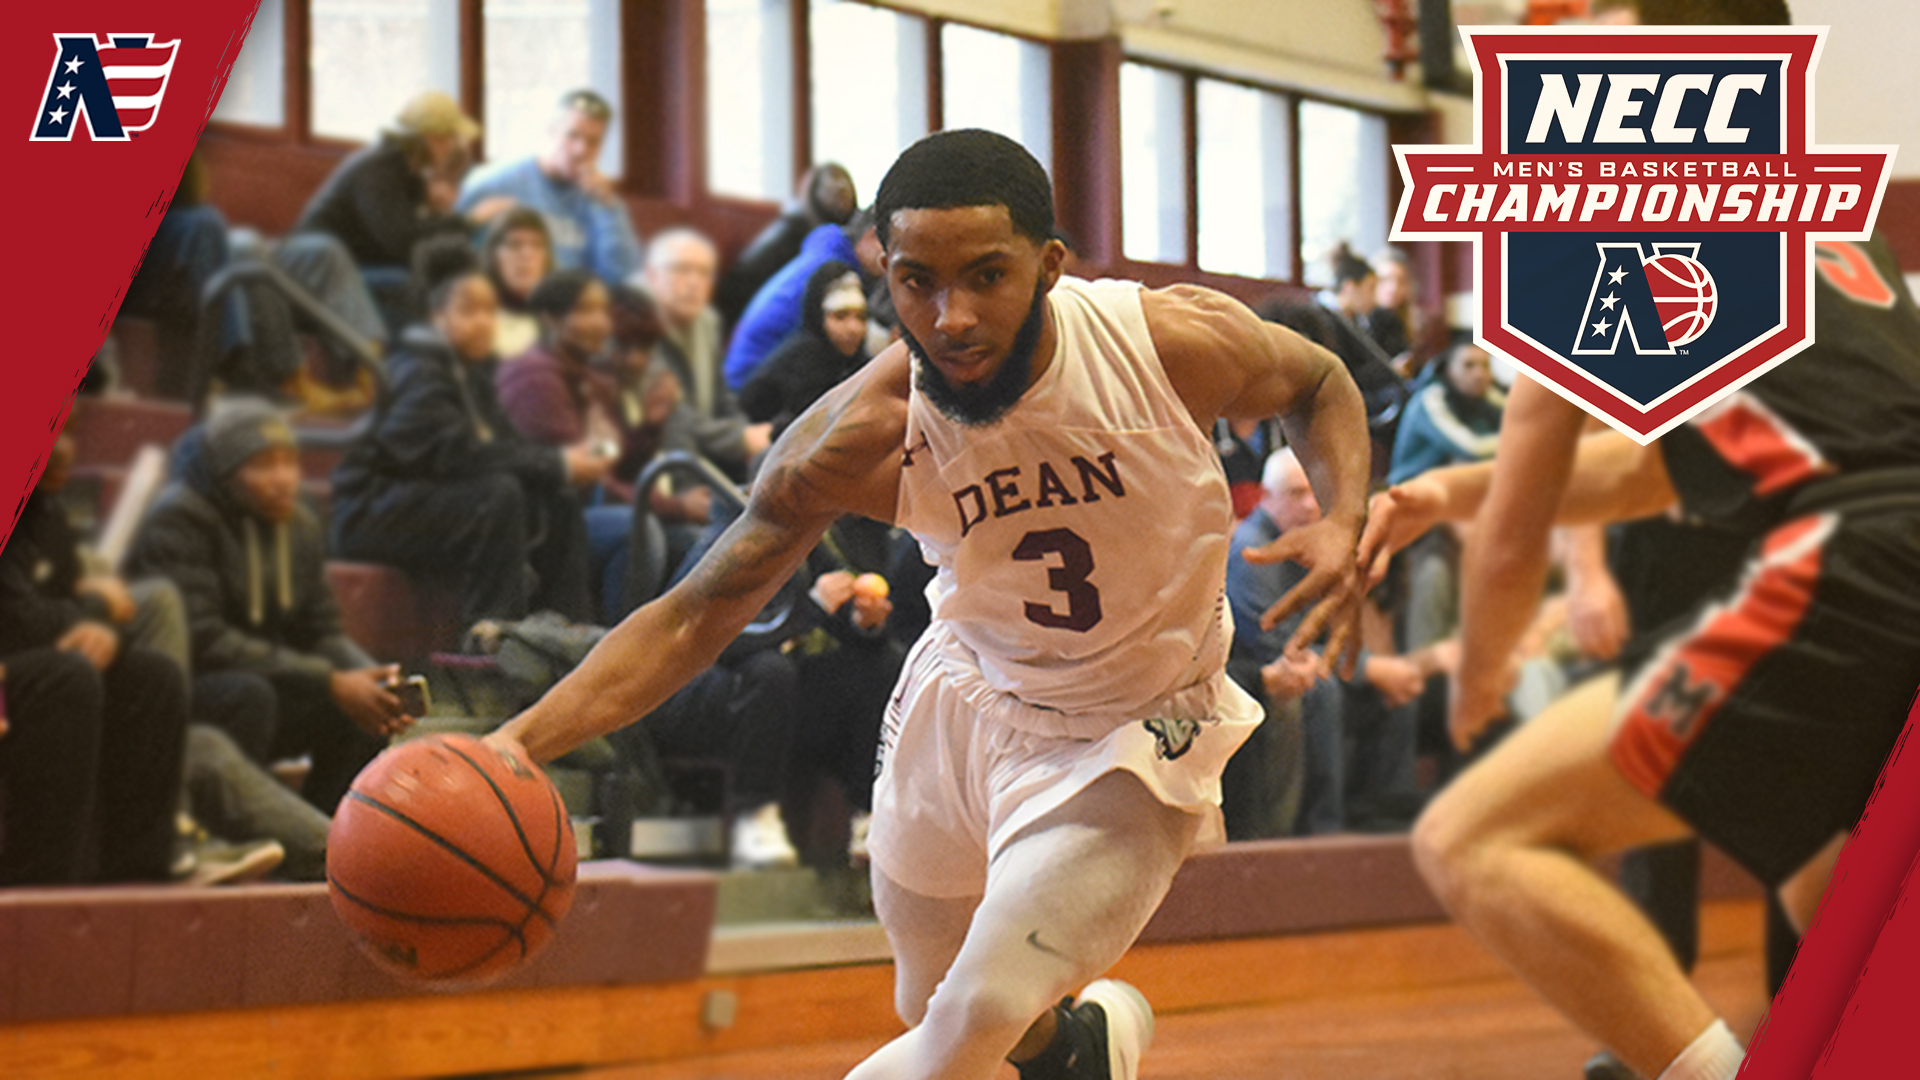 #4 Dean Advances to NECC Semifinals With Victory Over #5 Elms